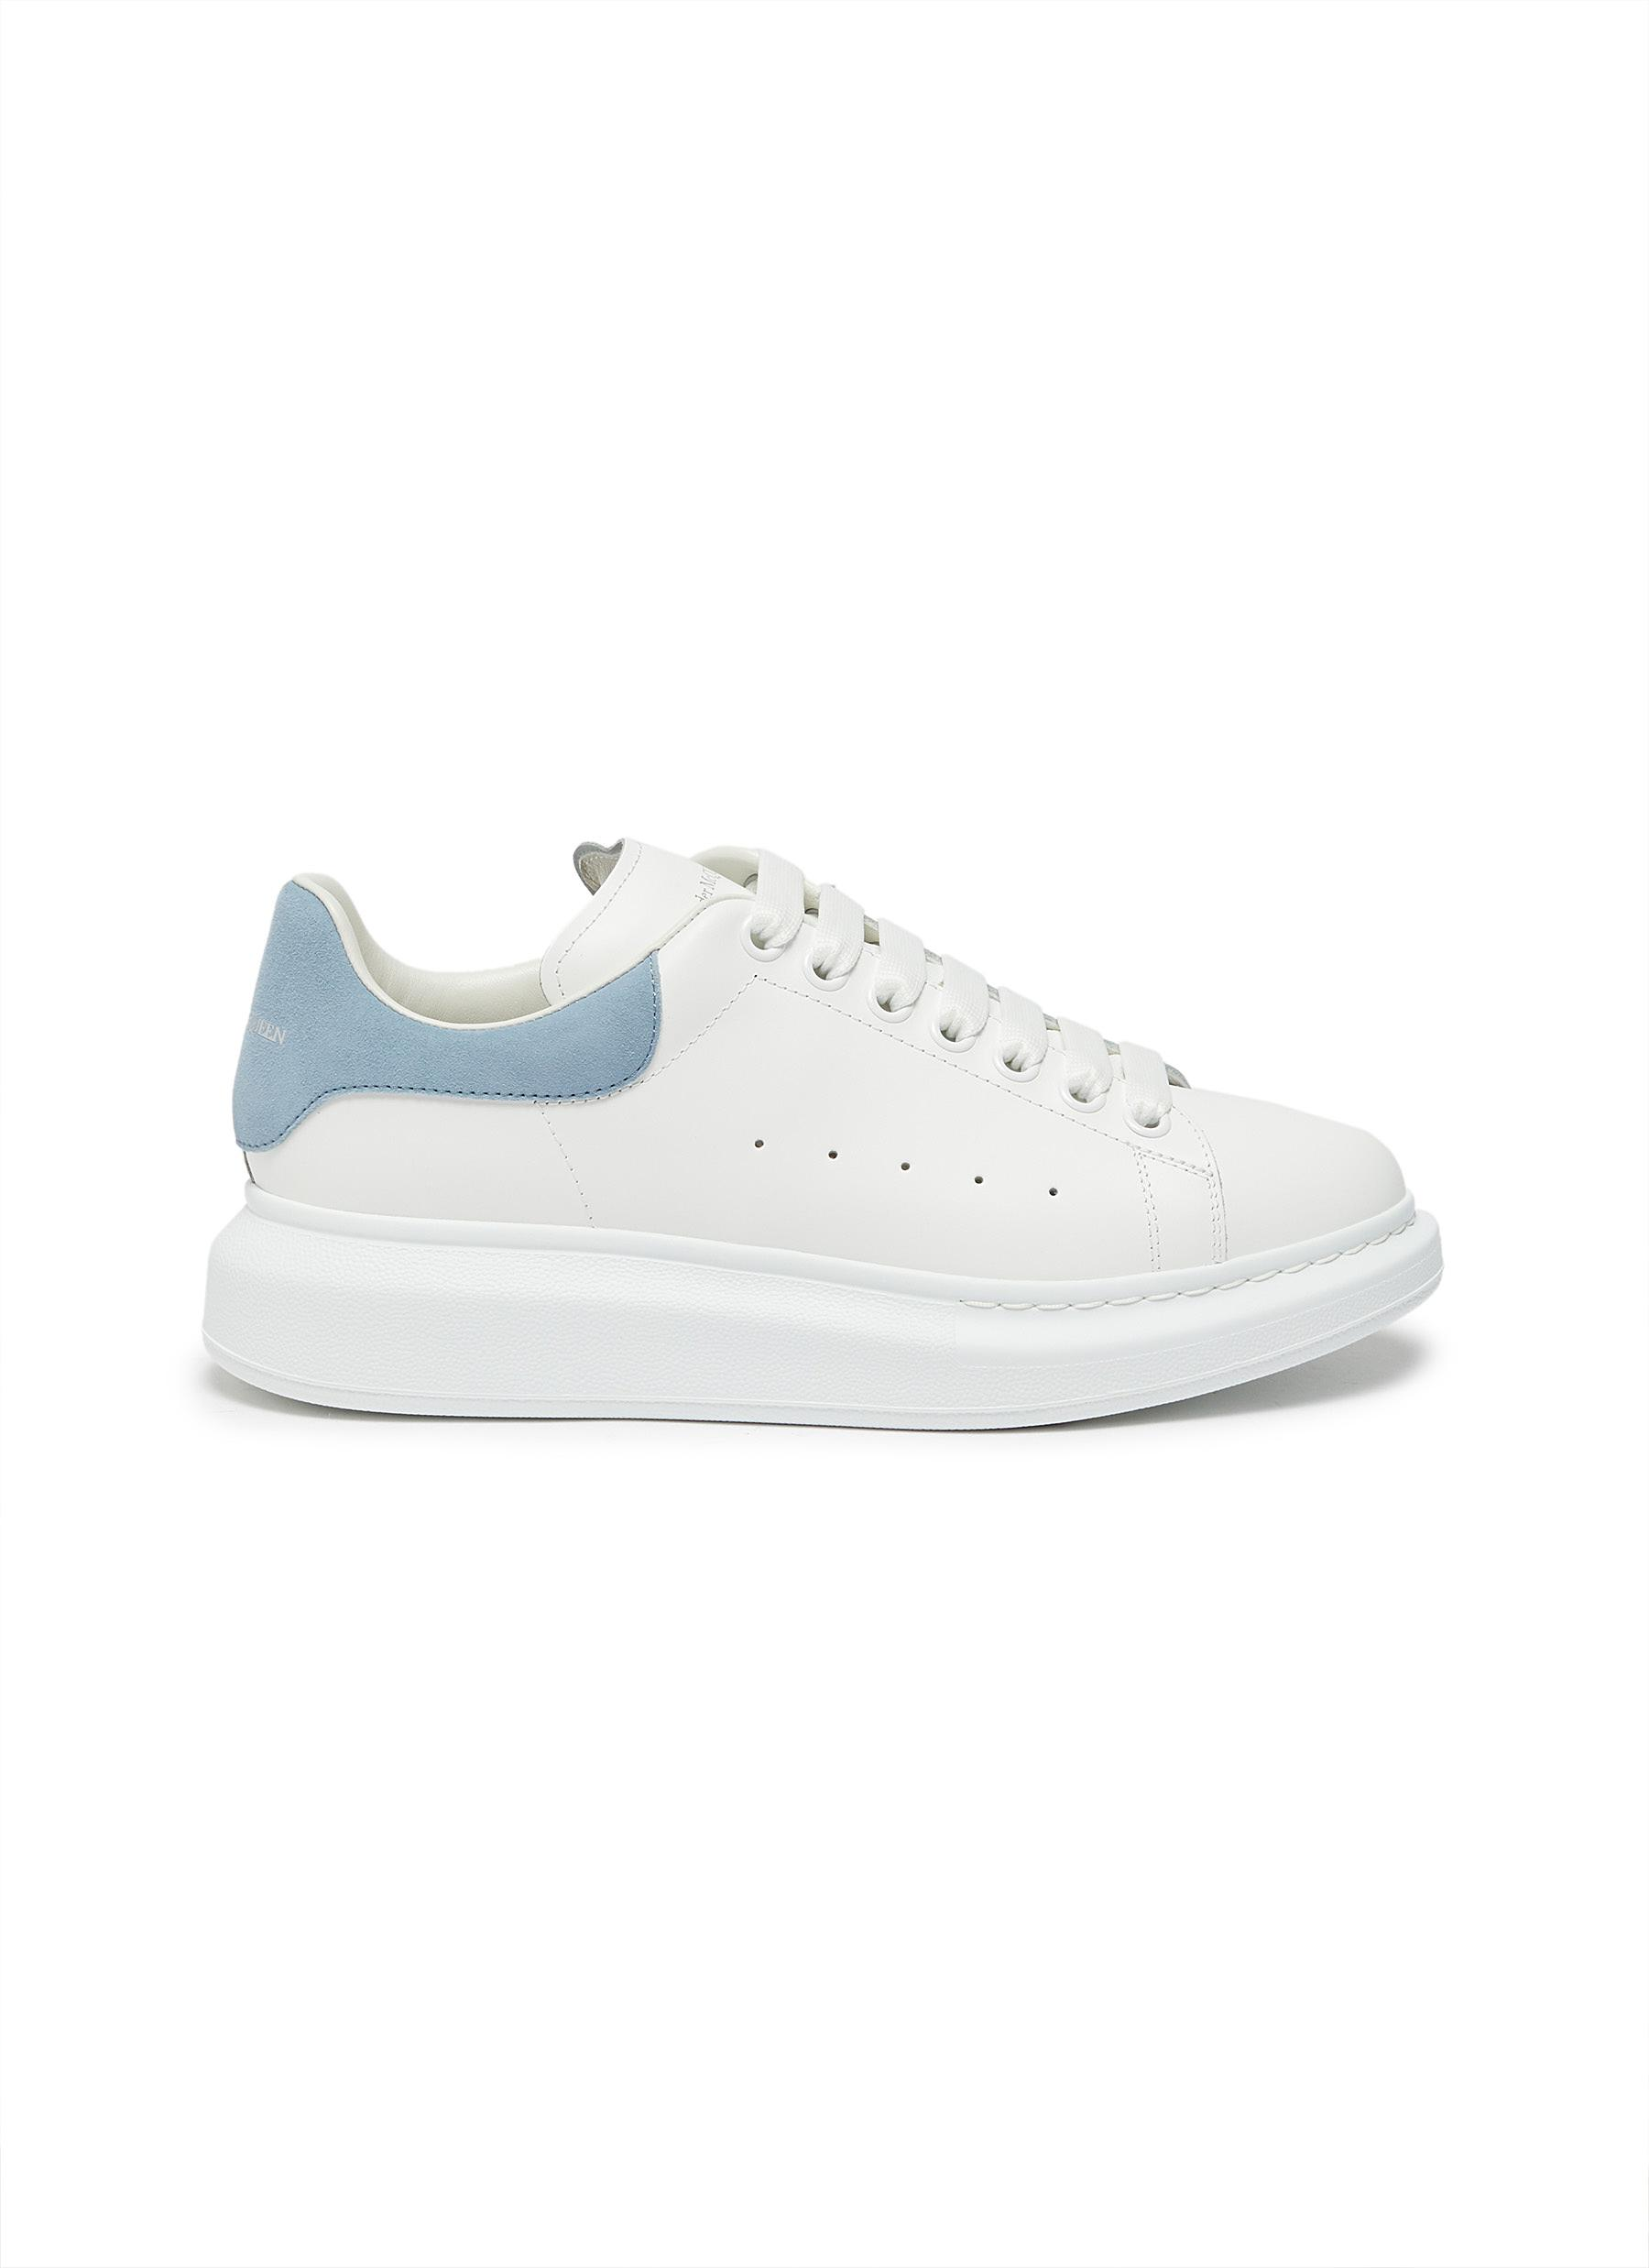 'Oversized Sneakers' in Calfskin Leather with Contrast Heel Tab